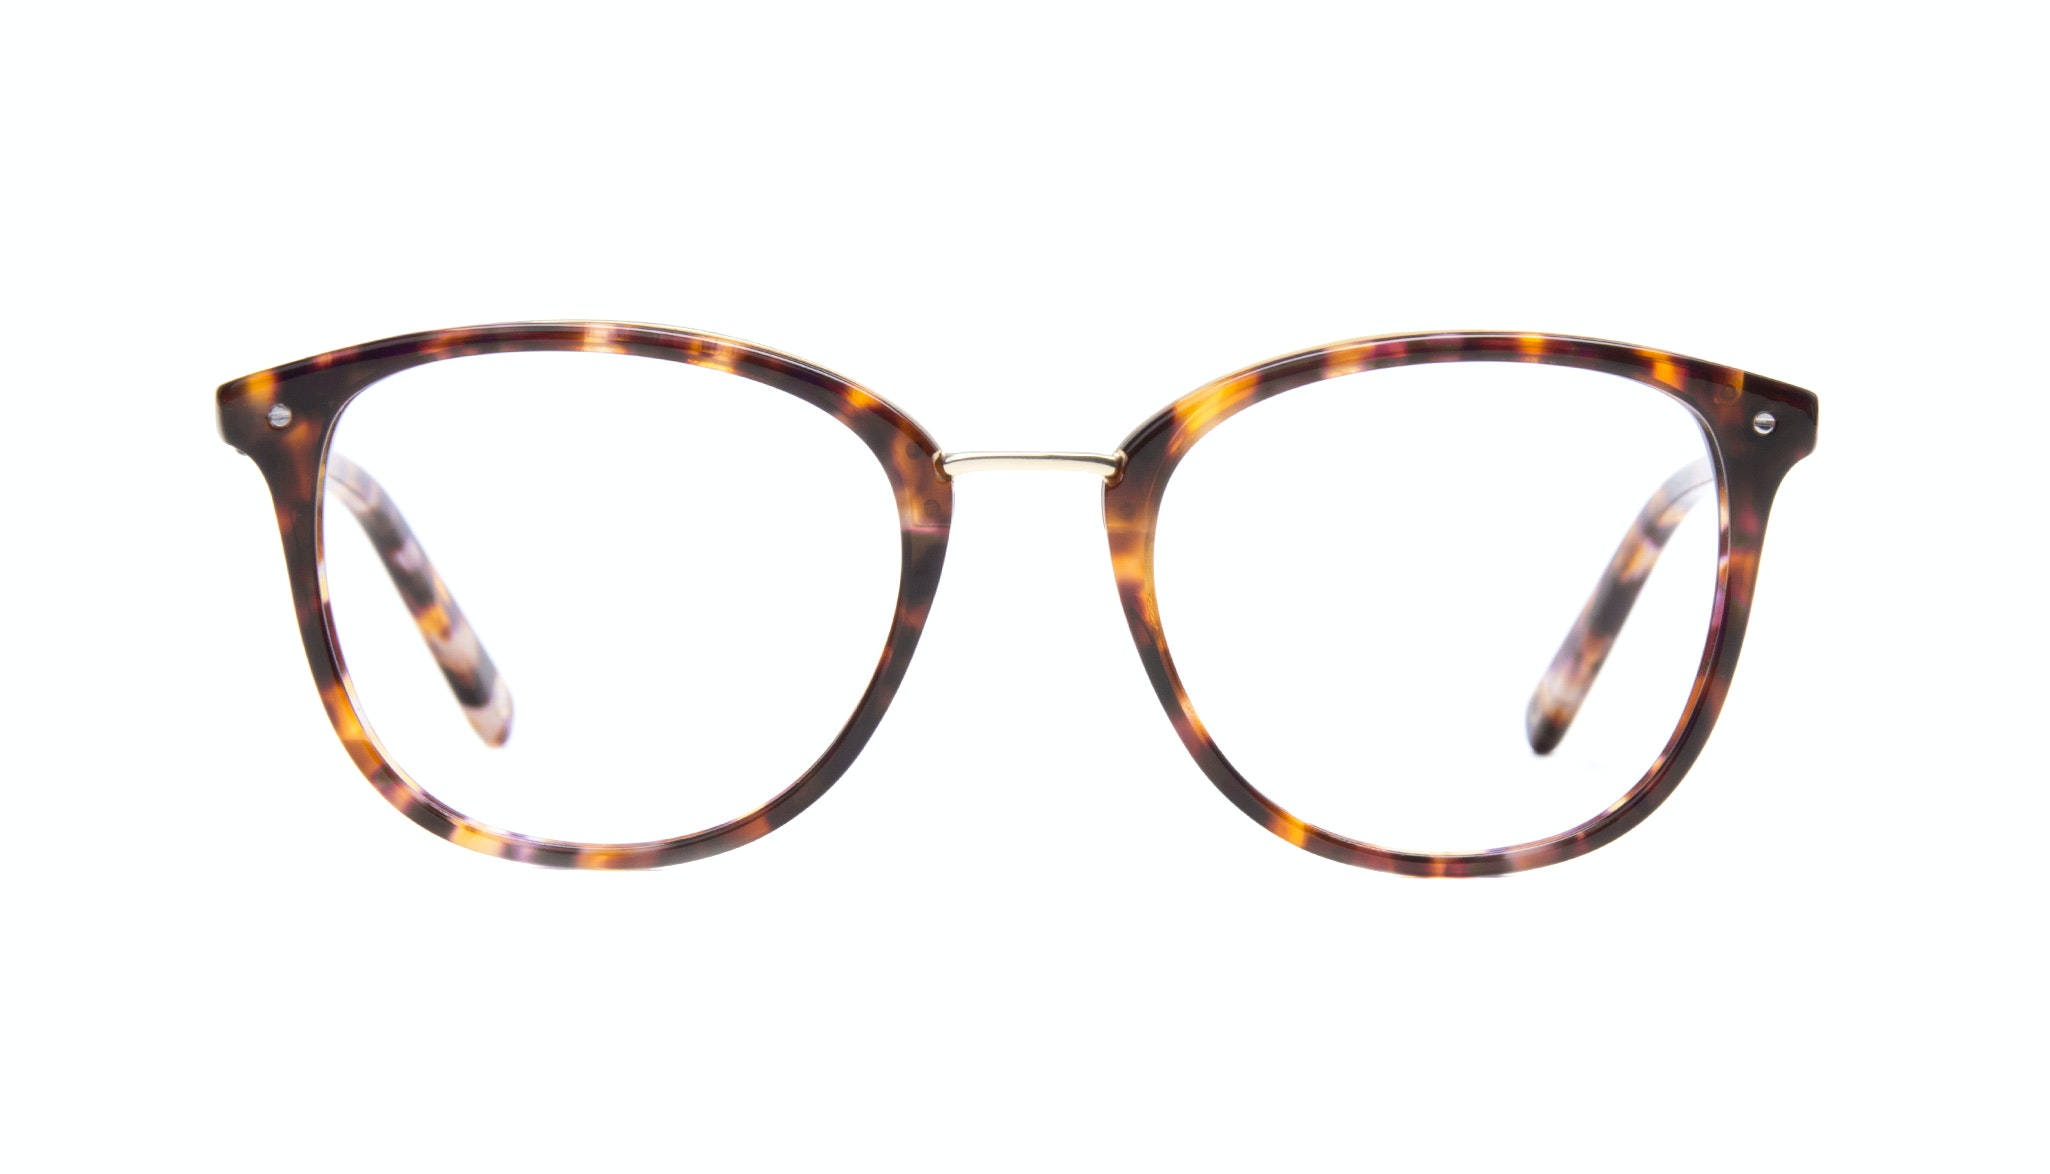 Affordable Fashion Glasses Square Round Eyeglasses Women Ella Dark Tortoise